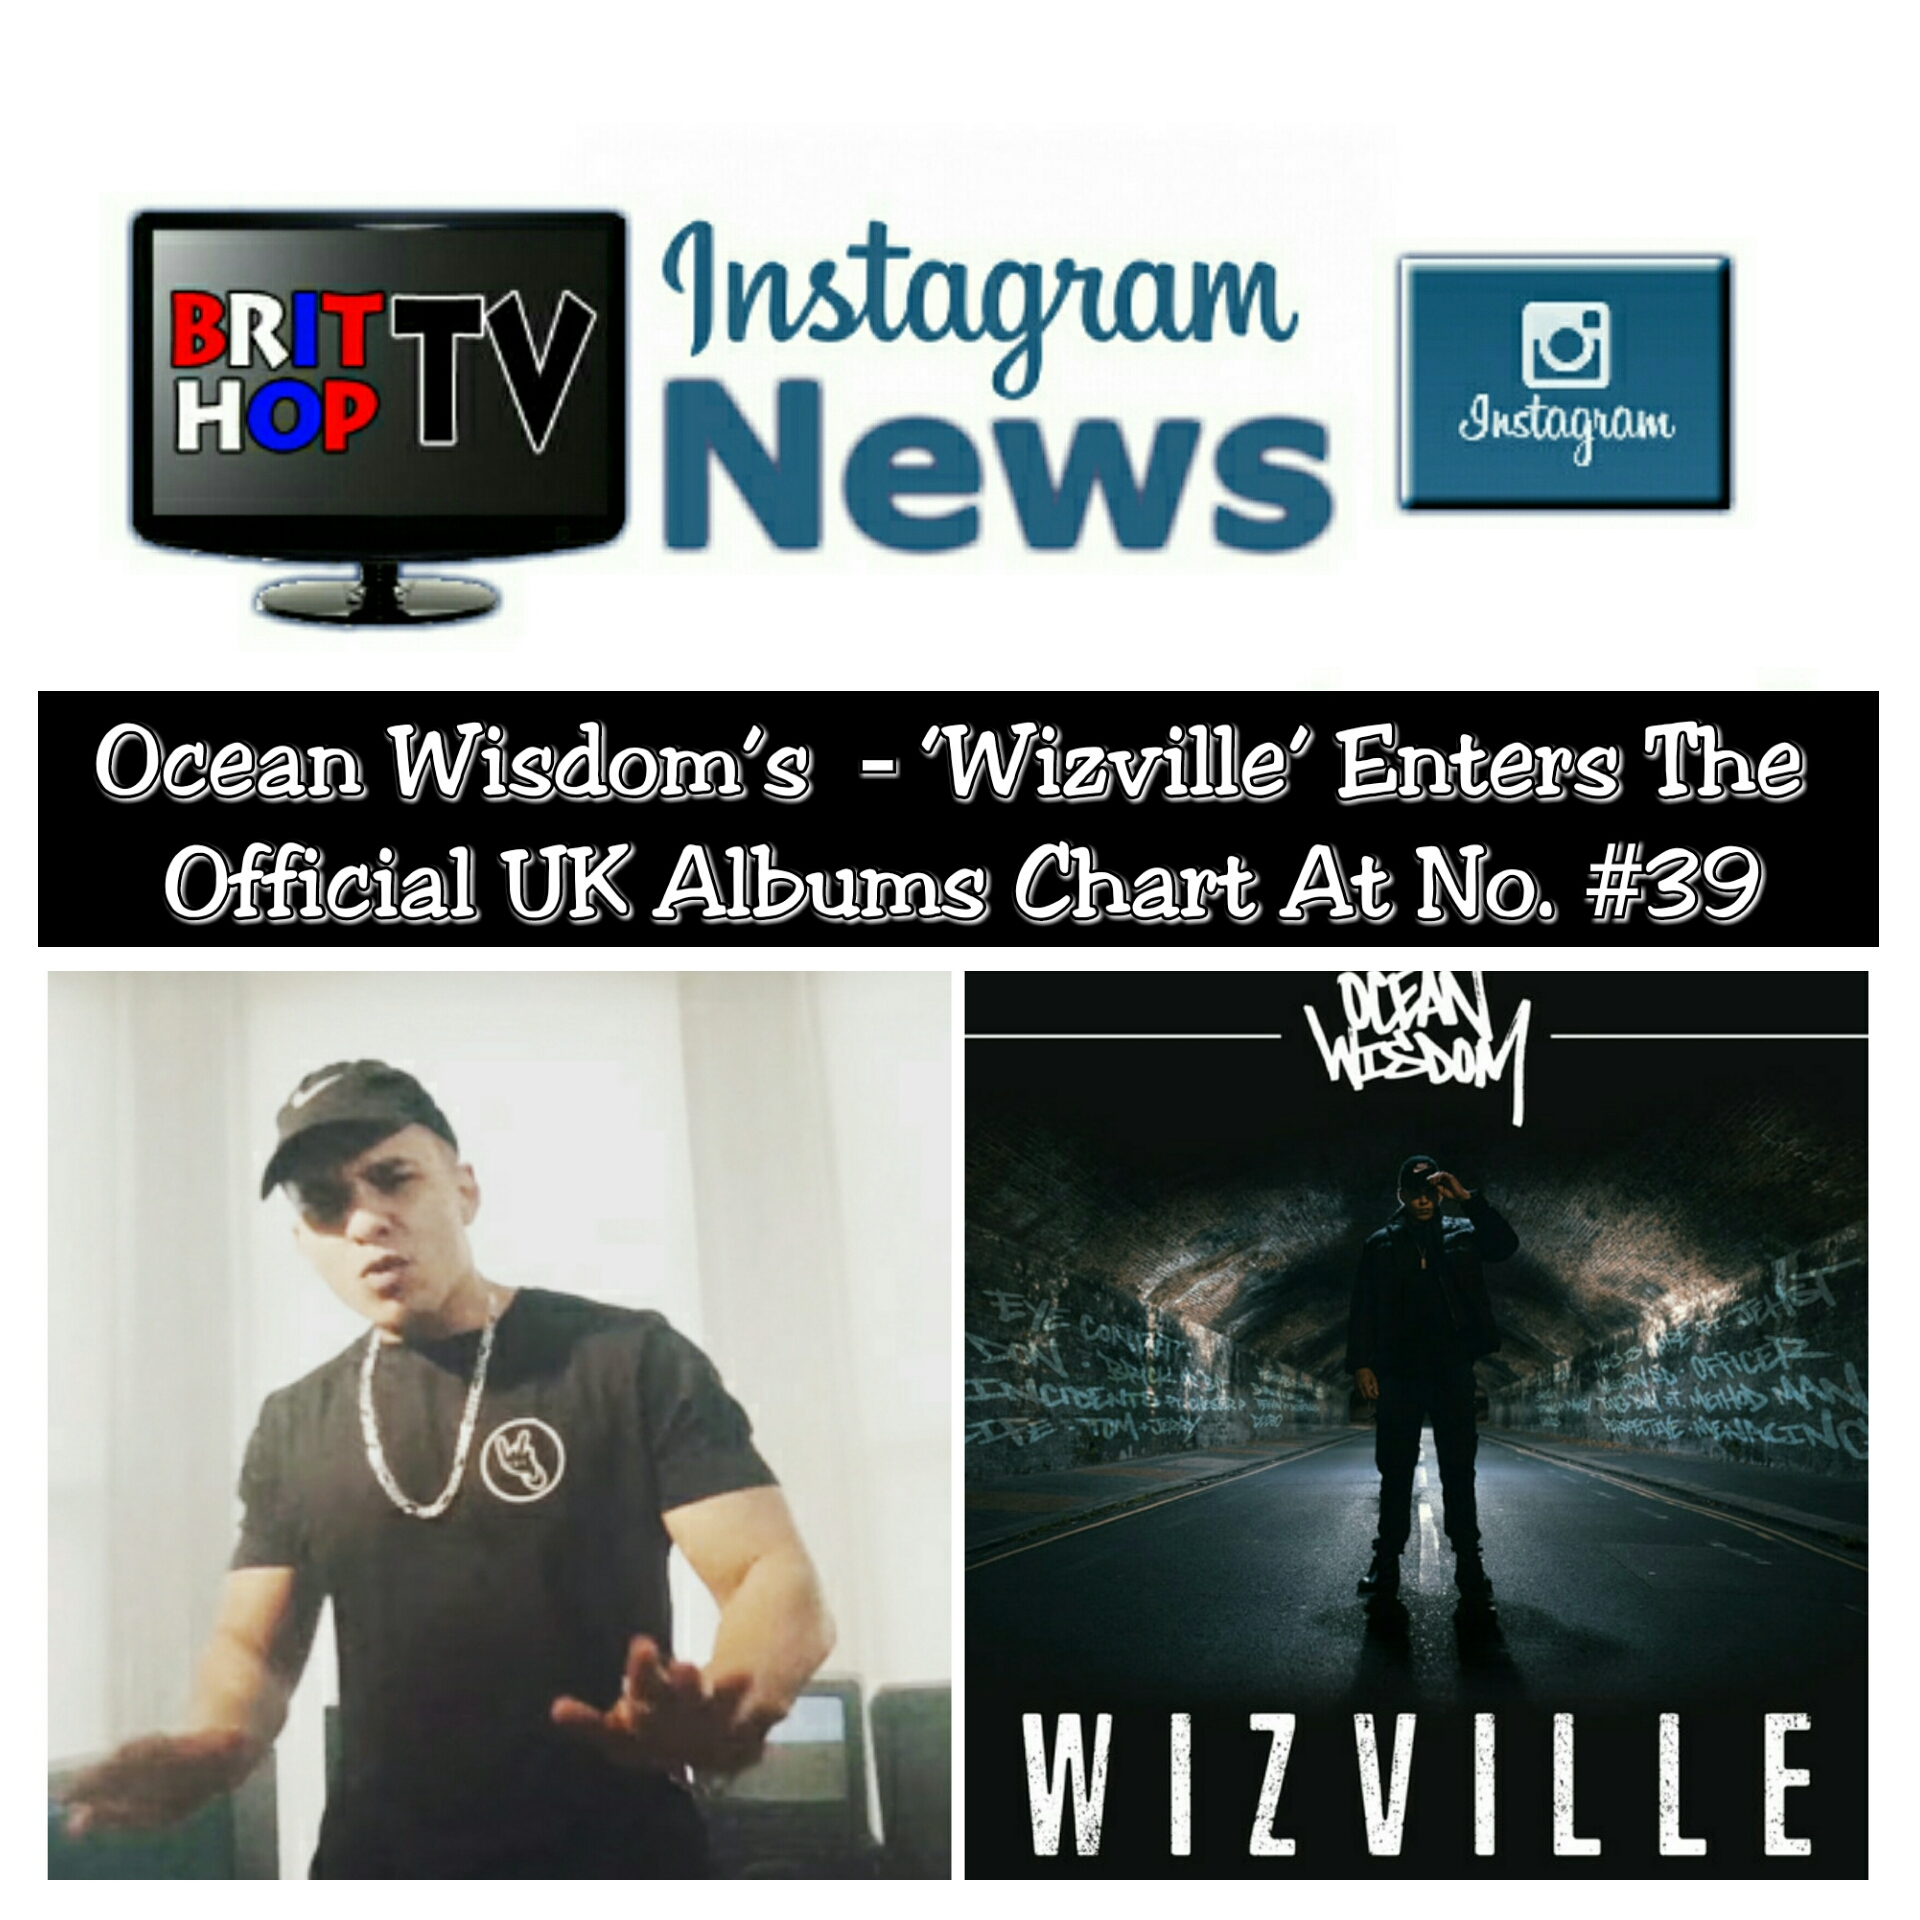 BRITHOPTV: [News] Ocean Wisdom's (@Ocean_Wisdom) – 'Wizville' Enters The Official UK Albums Chart At No. #39 | #UKRap #UKHipHop